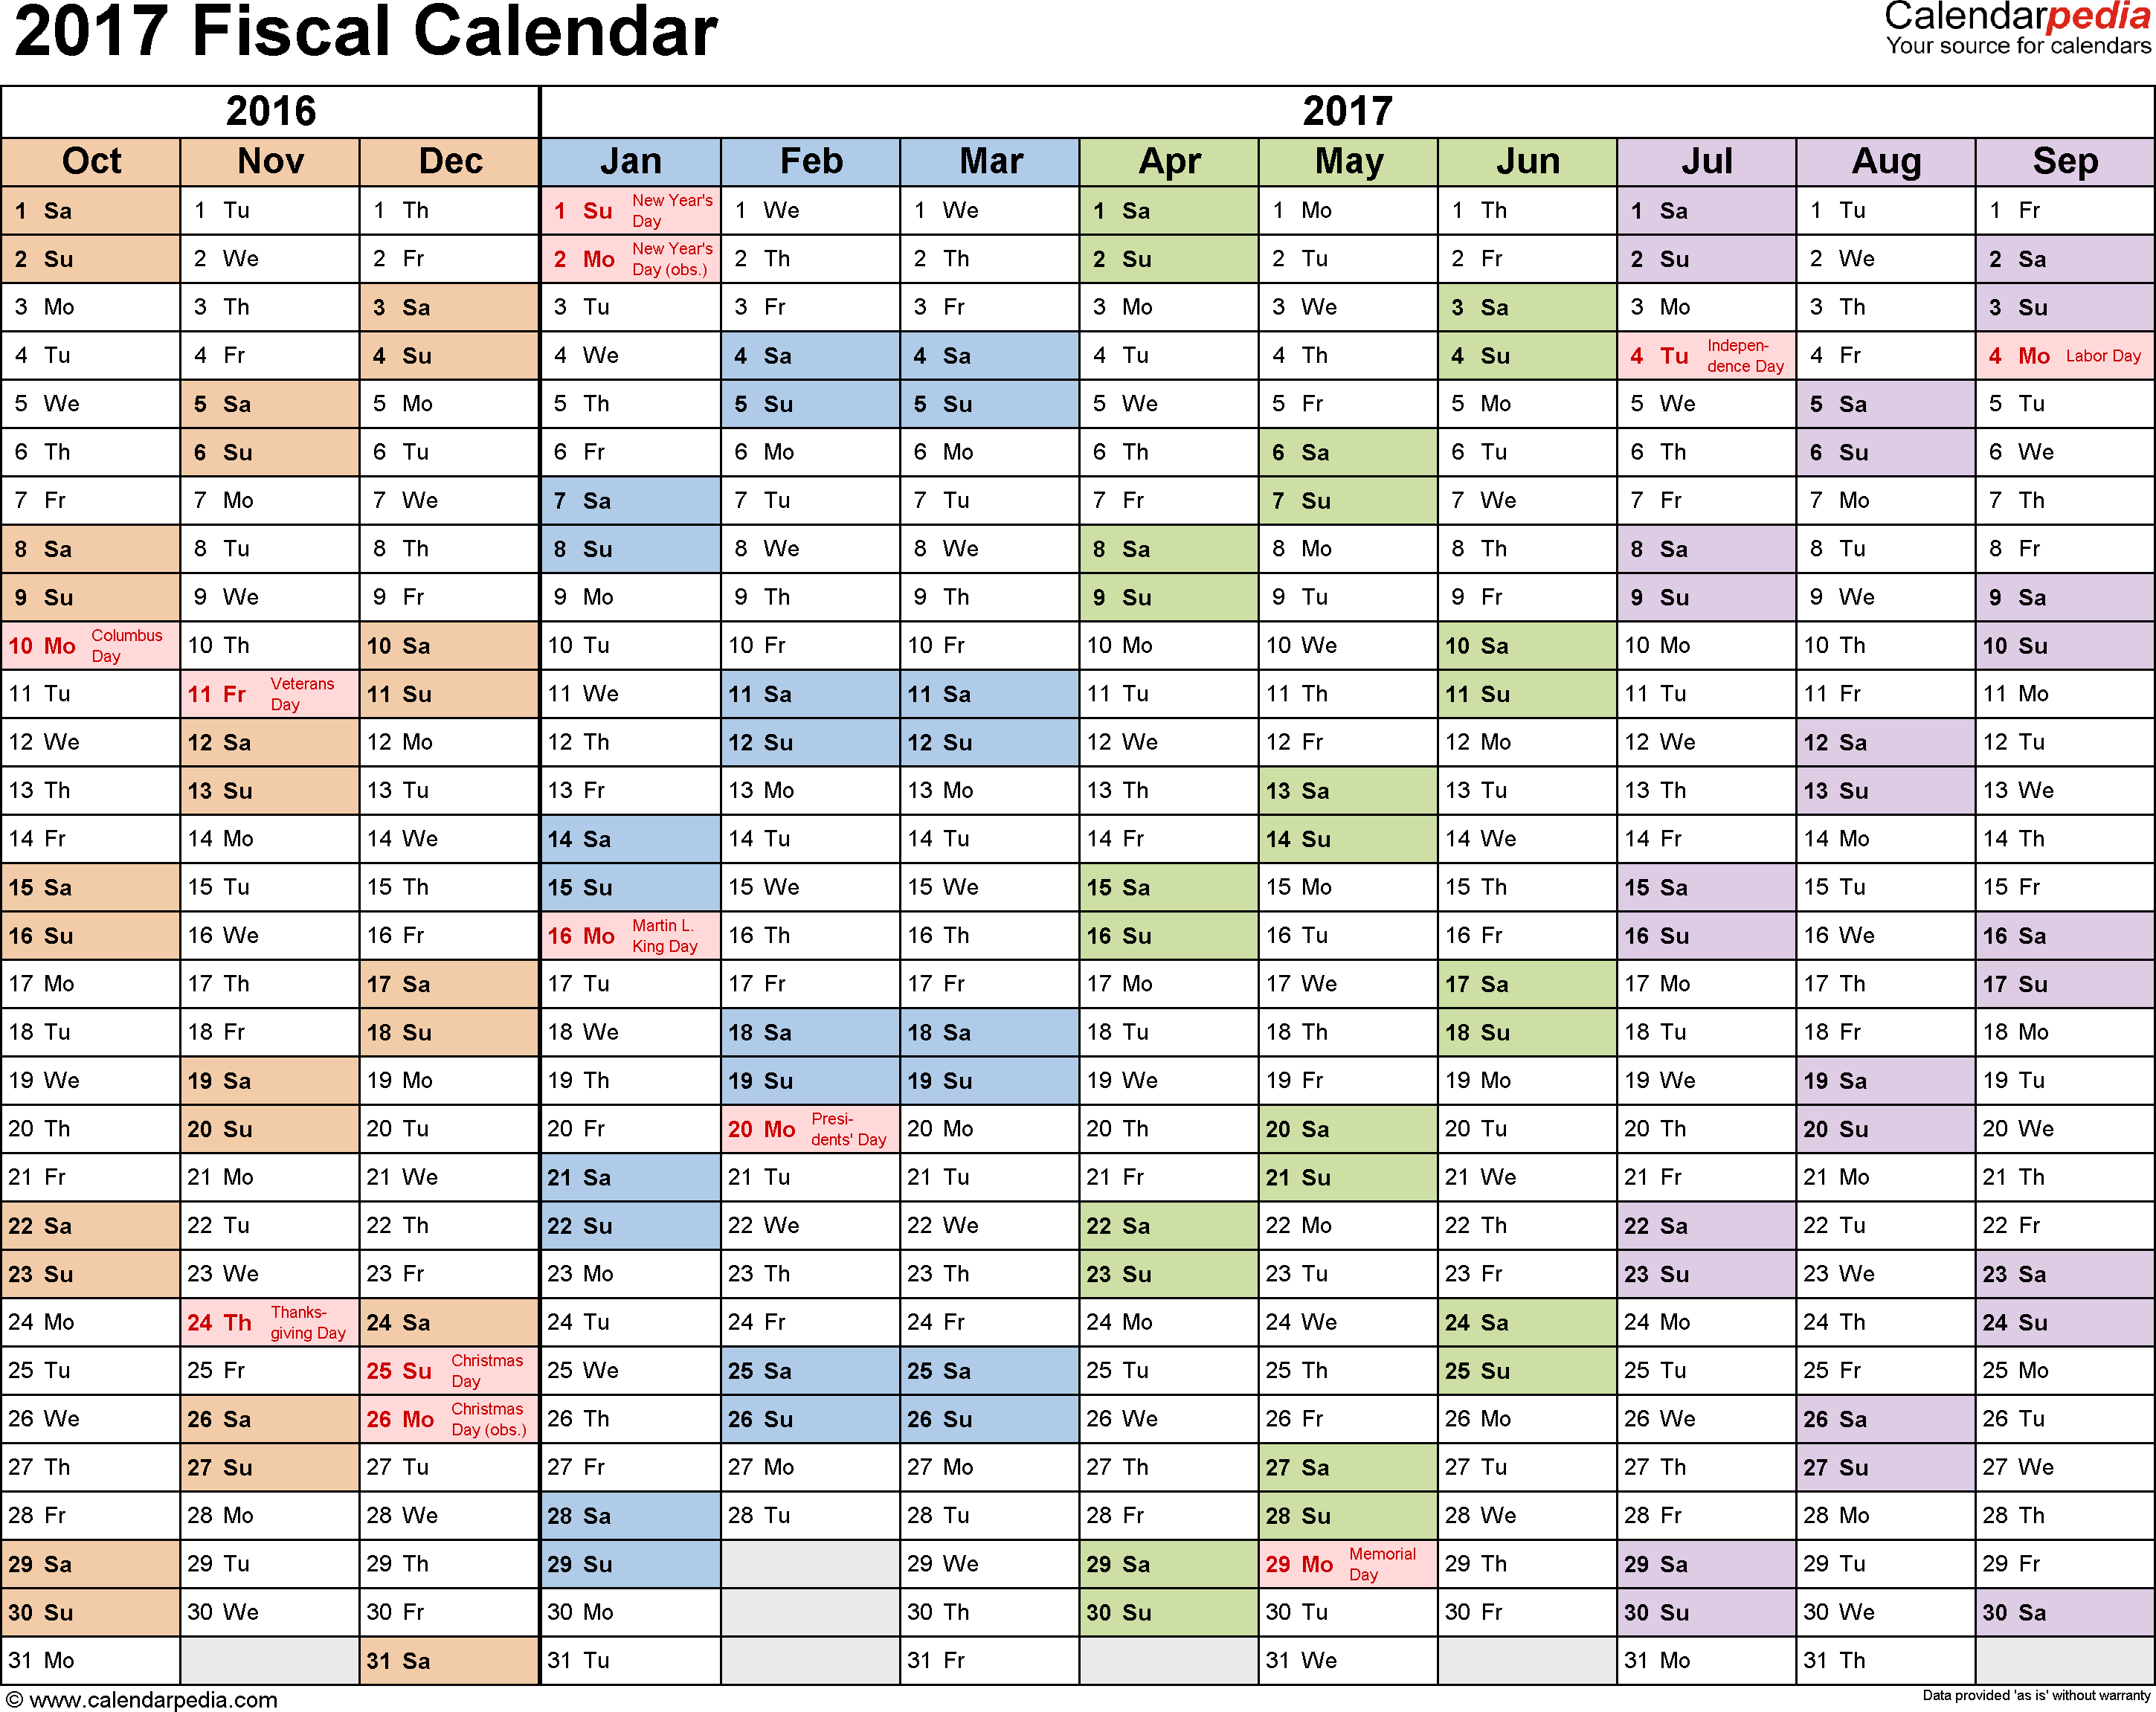 Template 1: Fiscal Year Calendar 2017 For PDF, Landscape Orientation,  Months Horizontally,